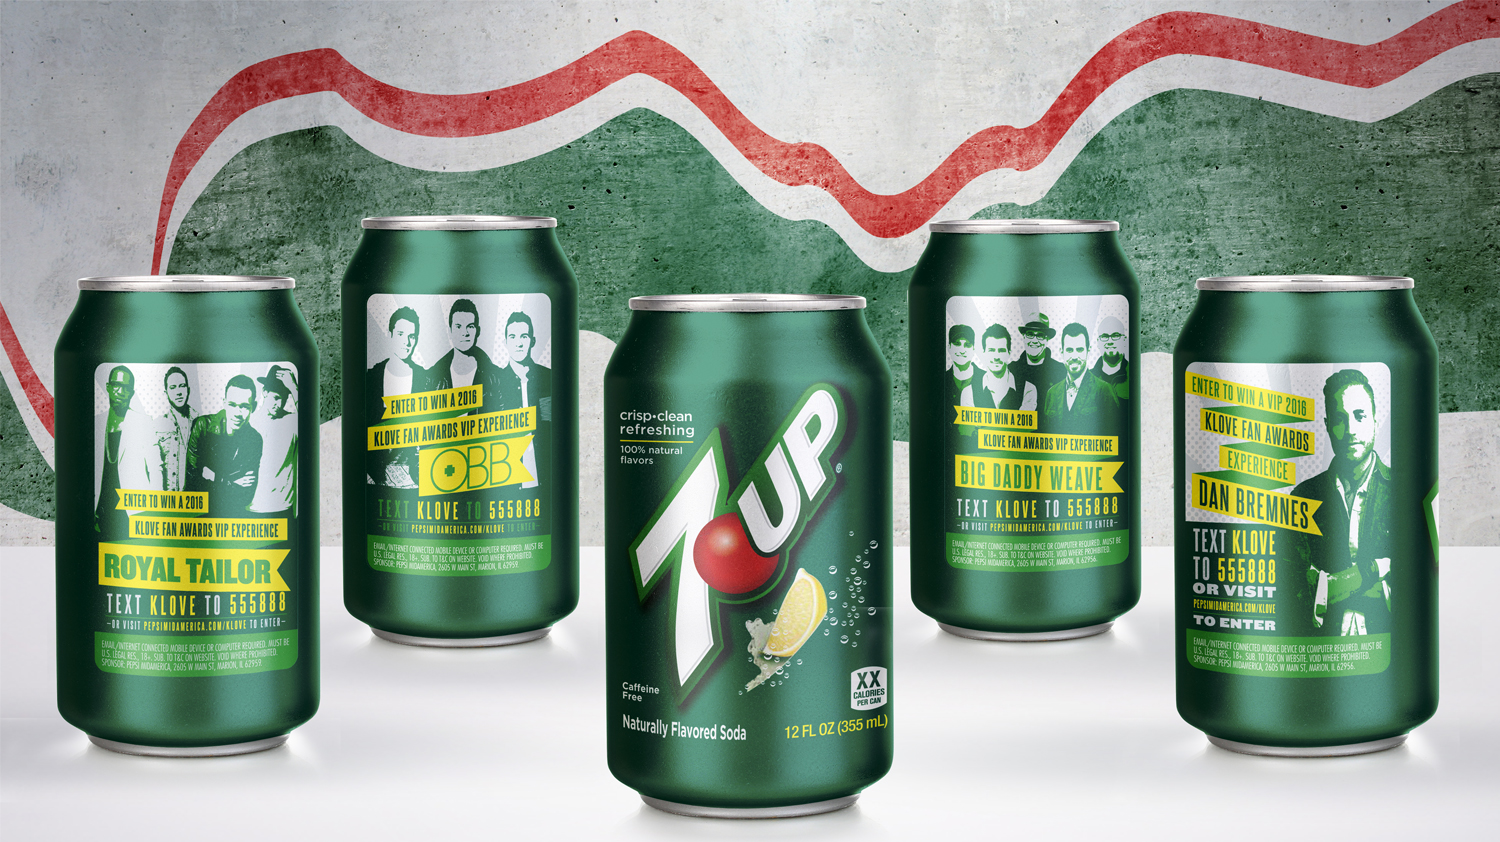 7up_cans.jpg